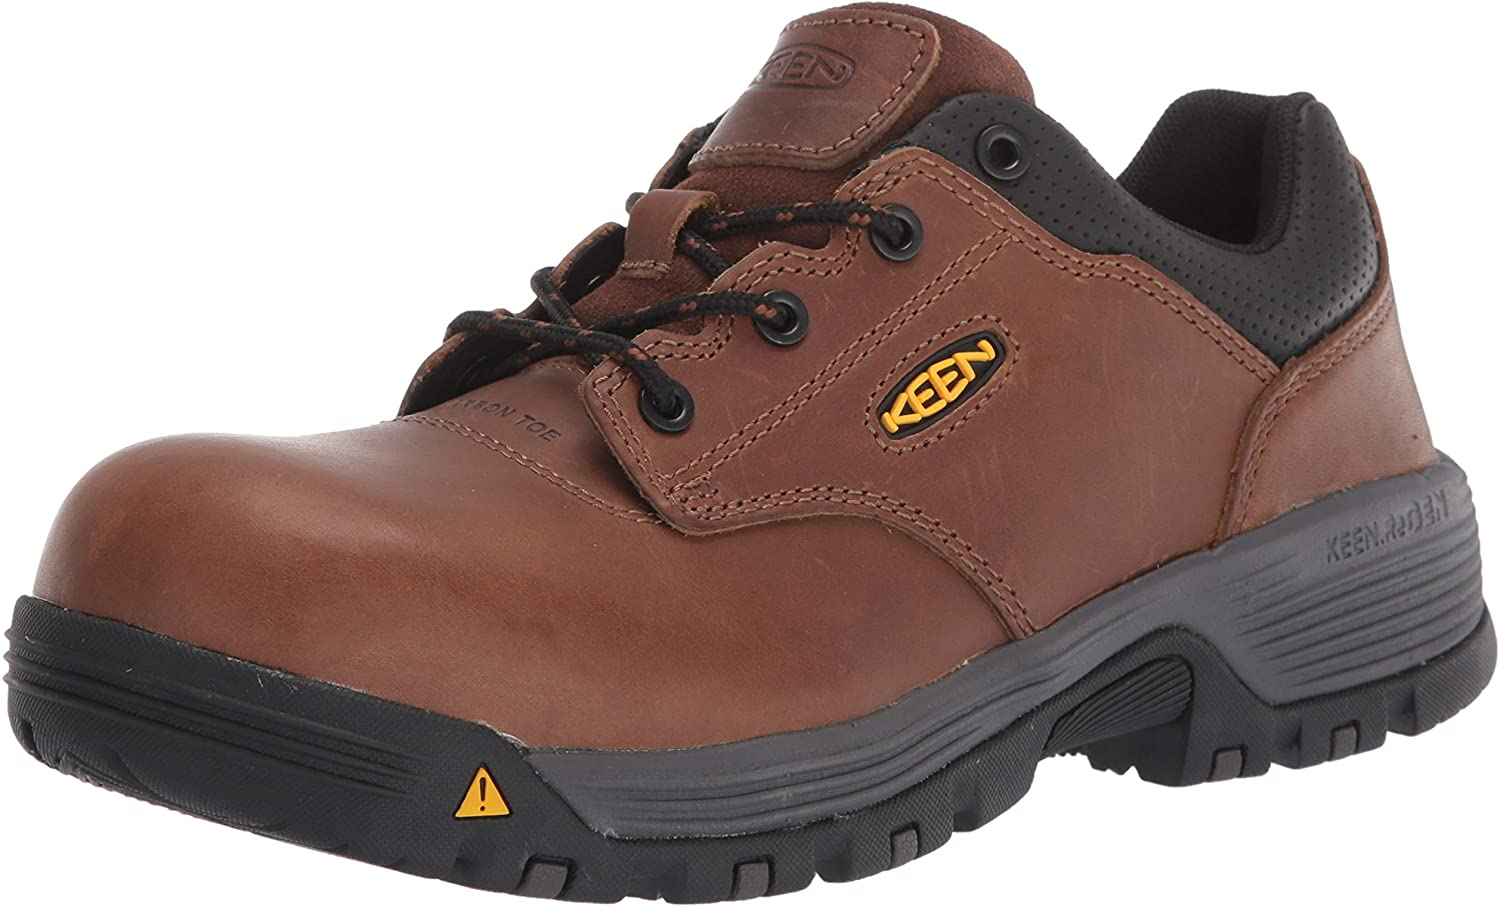 Special price KEEN Utility Men's Chicago Outlet sale feature Oxford Toe Composite Shoe Low Work